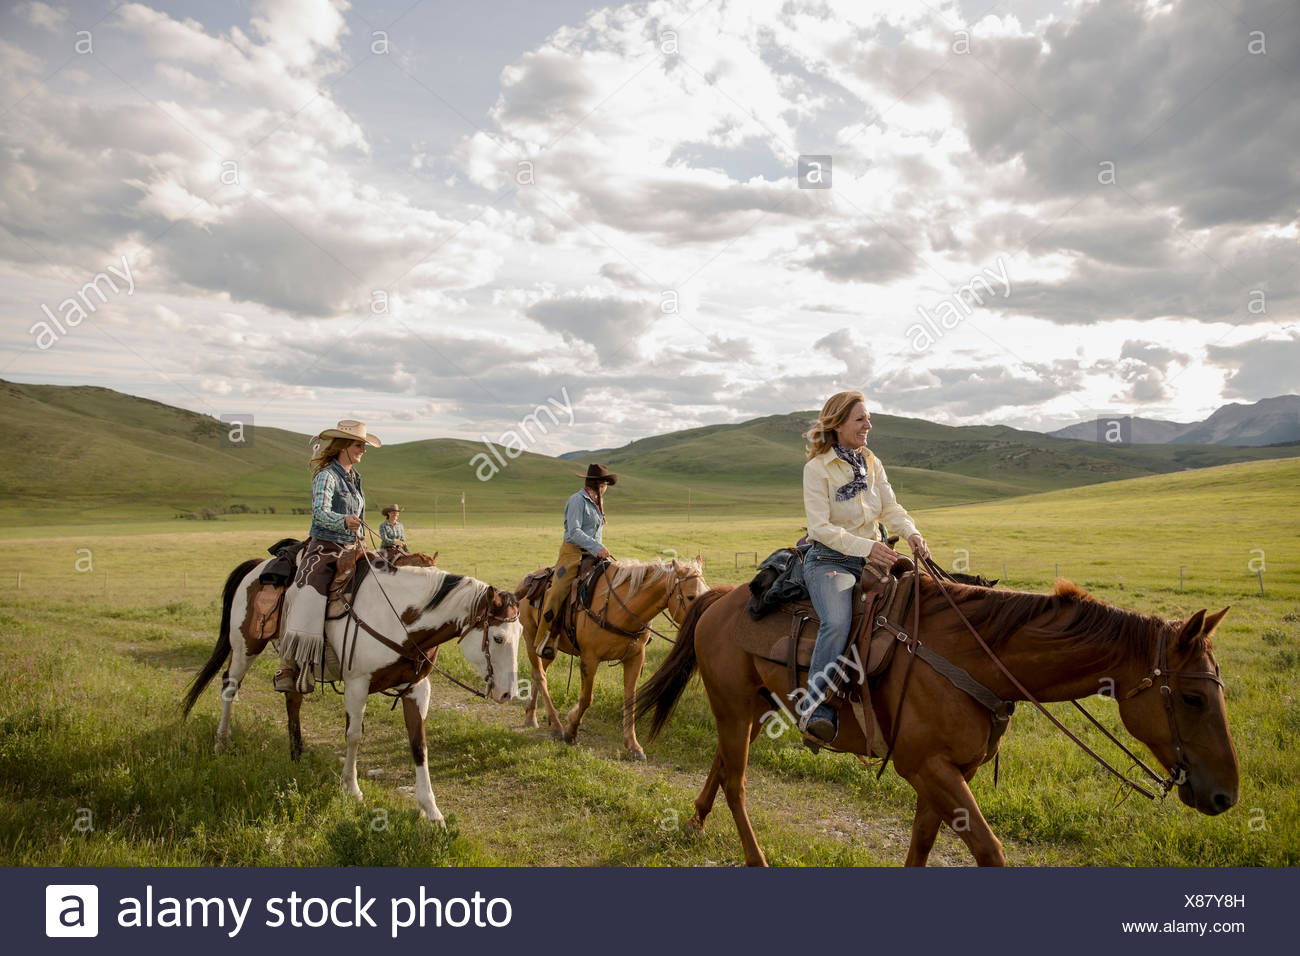 Female ranchers horseback riding in remote field - Stock Image